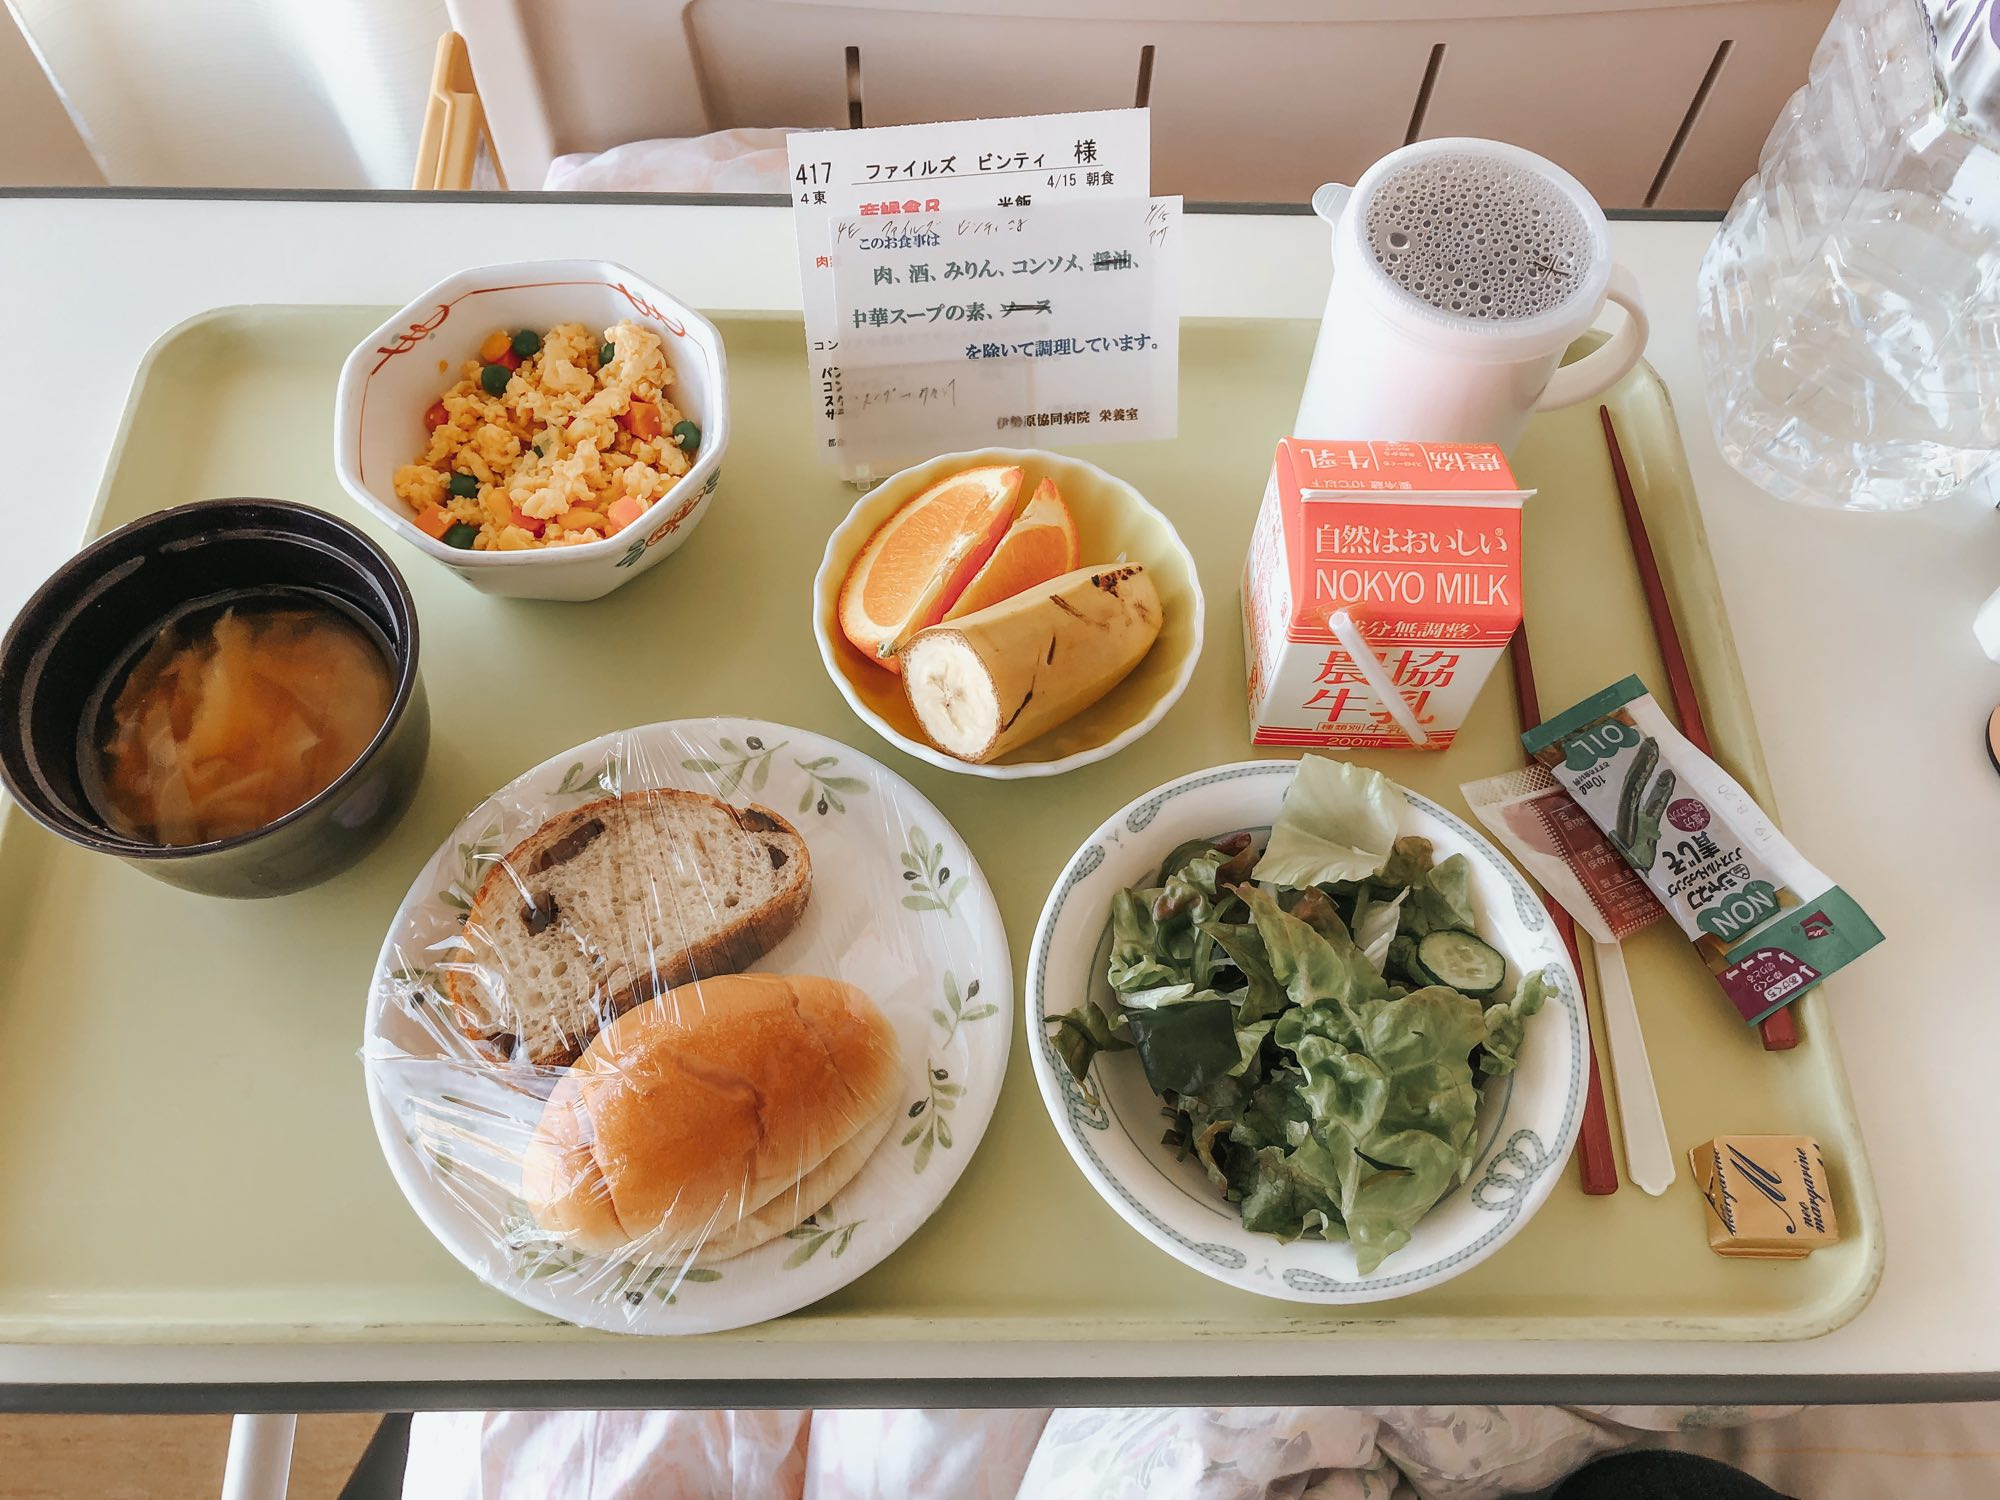 Full meal on a plate provided to mothers giving birth in Japan hospitals